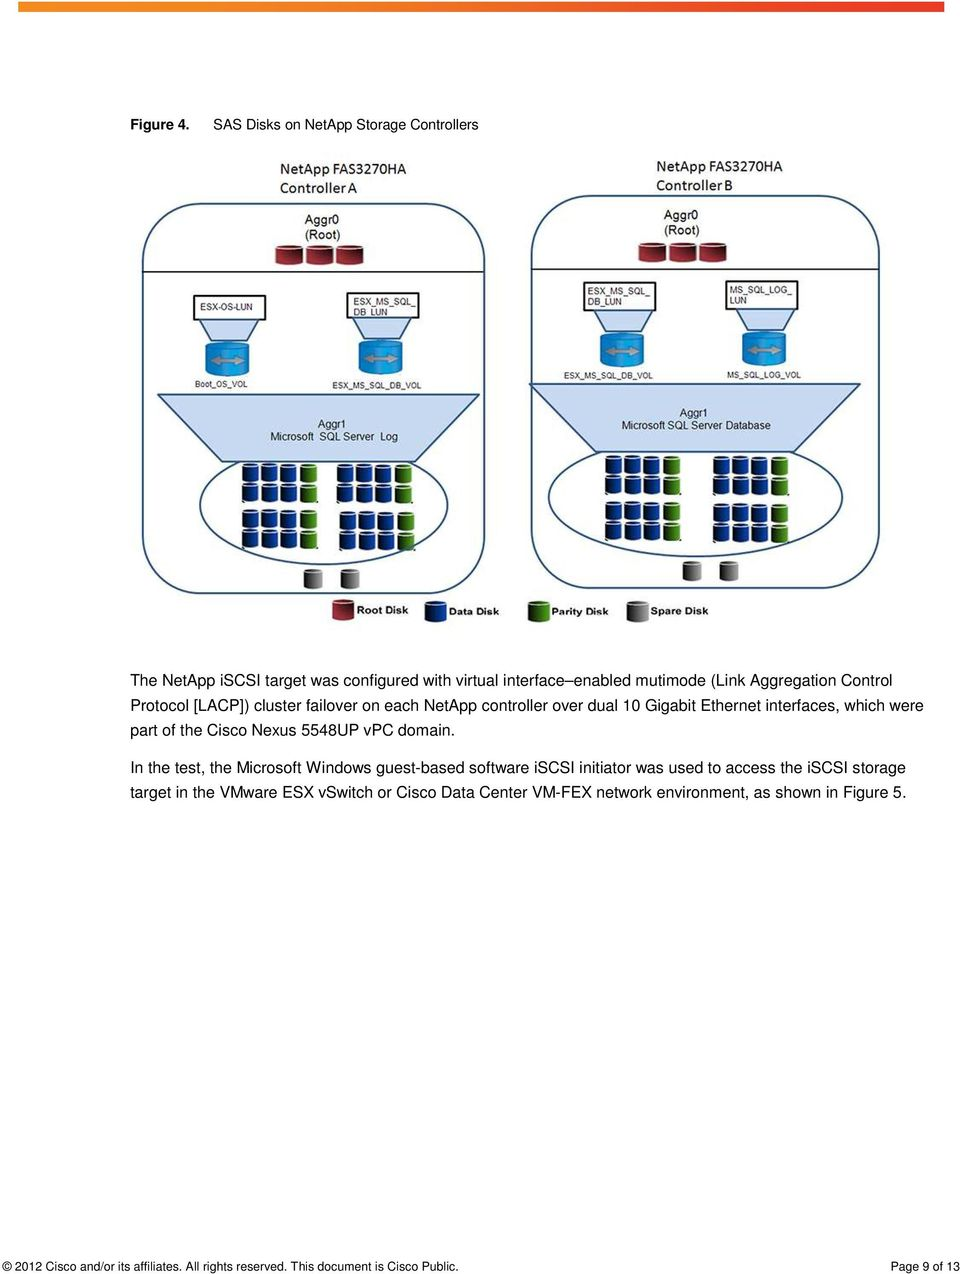 [LACP]) cluster failover on each NetApp controller over dual 10 Gigabit Ethernet interfaces, which were part of the Cisco Nexus 5548UP vpc domain.